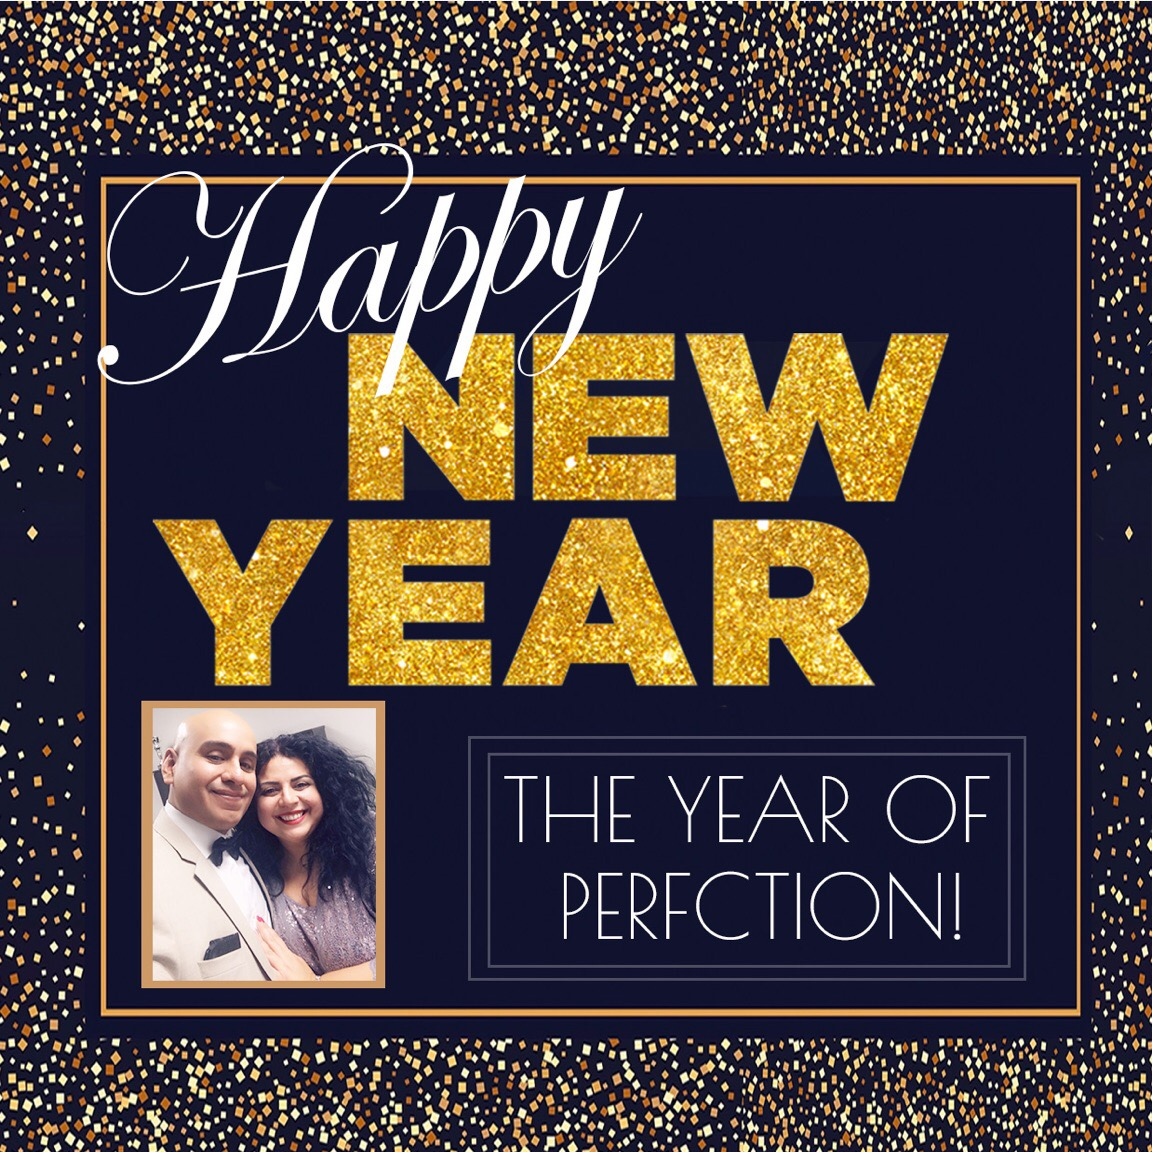 Happy New Year of Perfection!